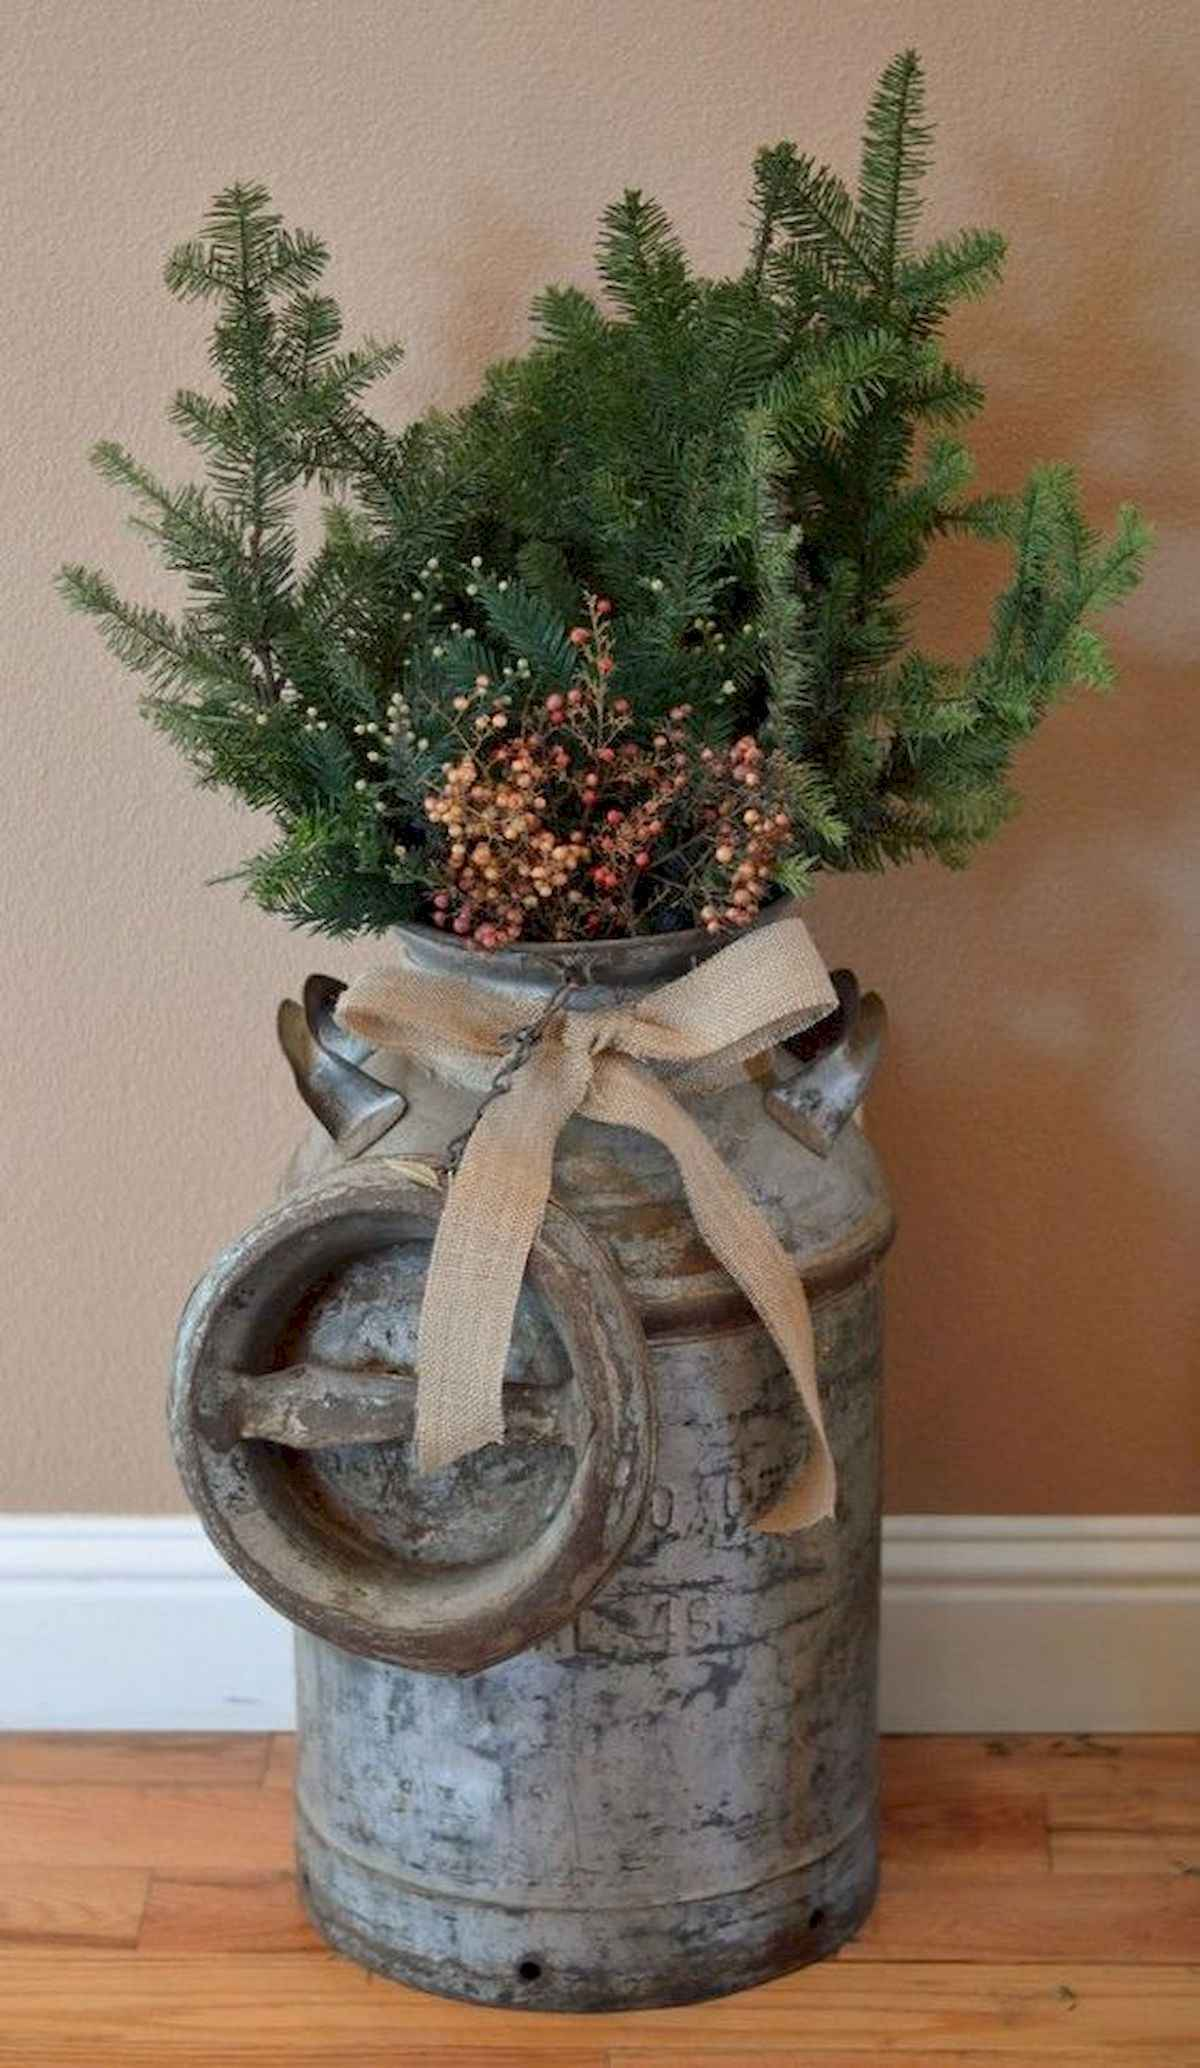 30 rustic and vintage christmas tree ideas decorations (21)